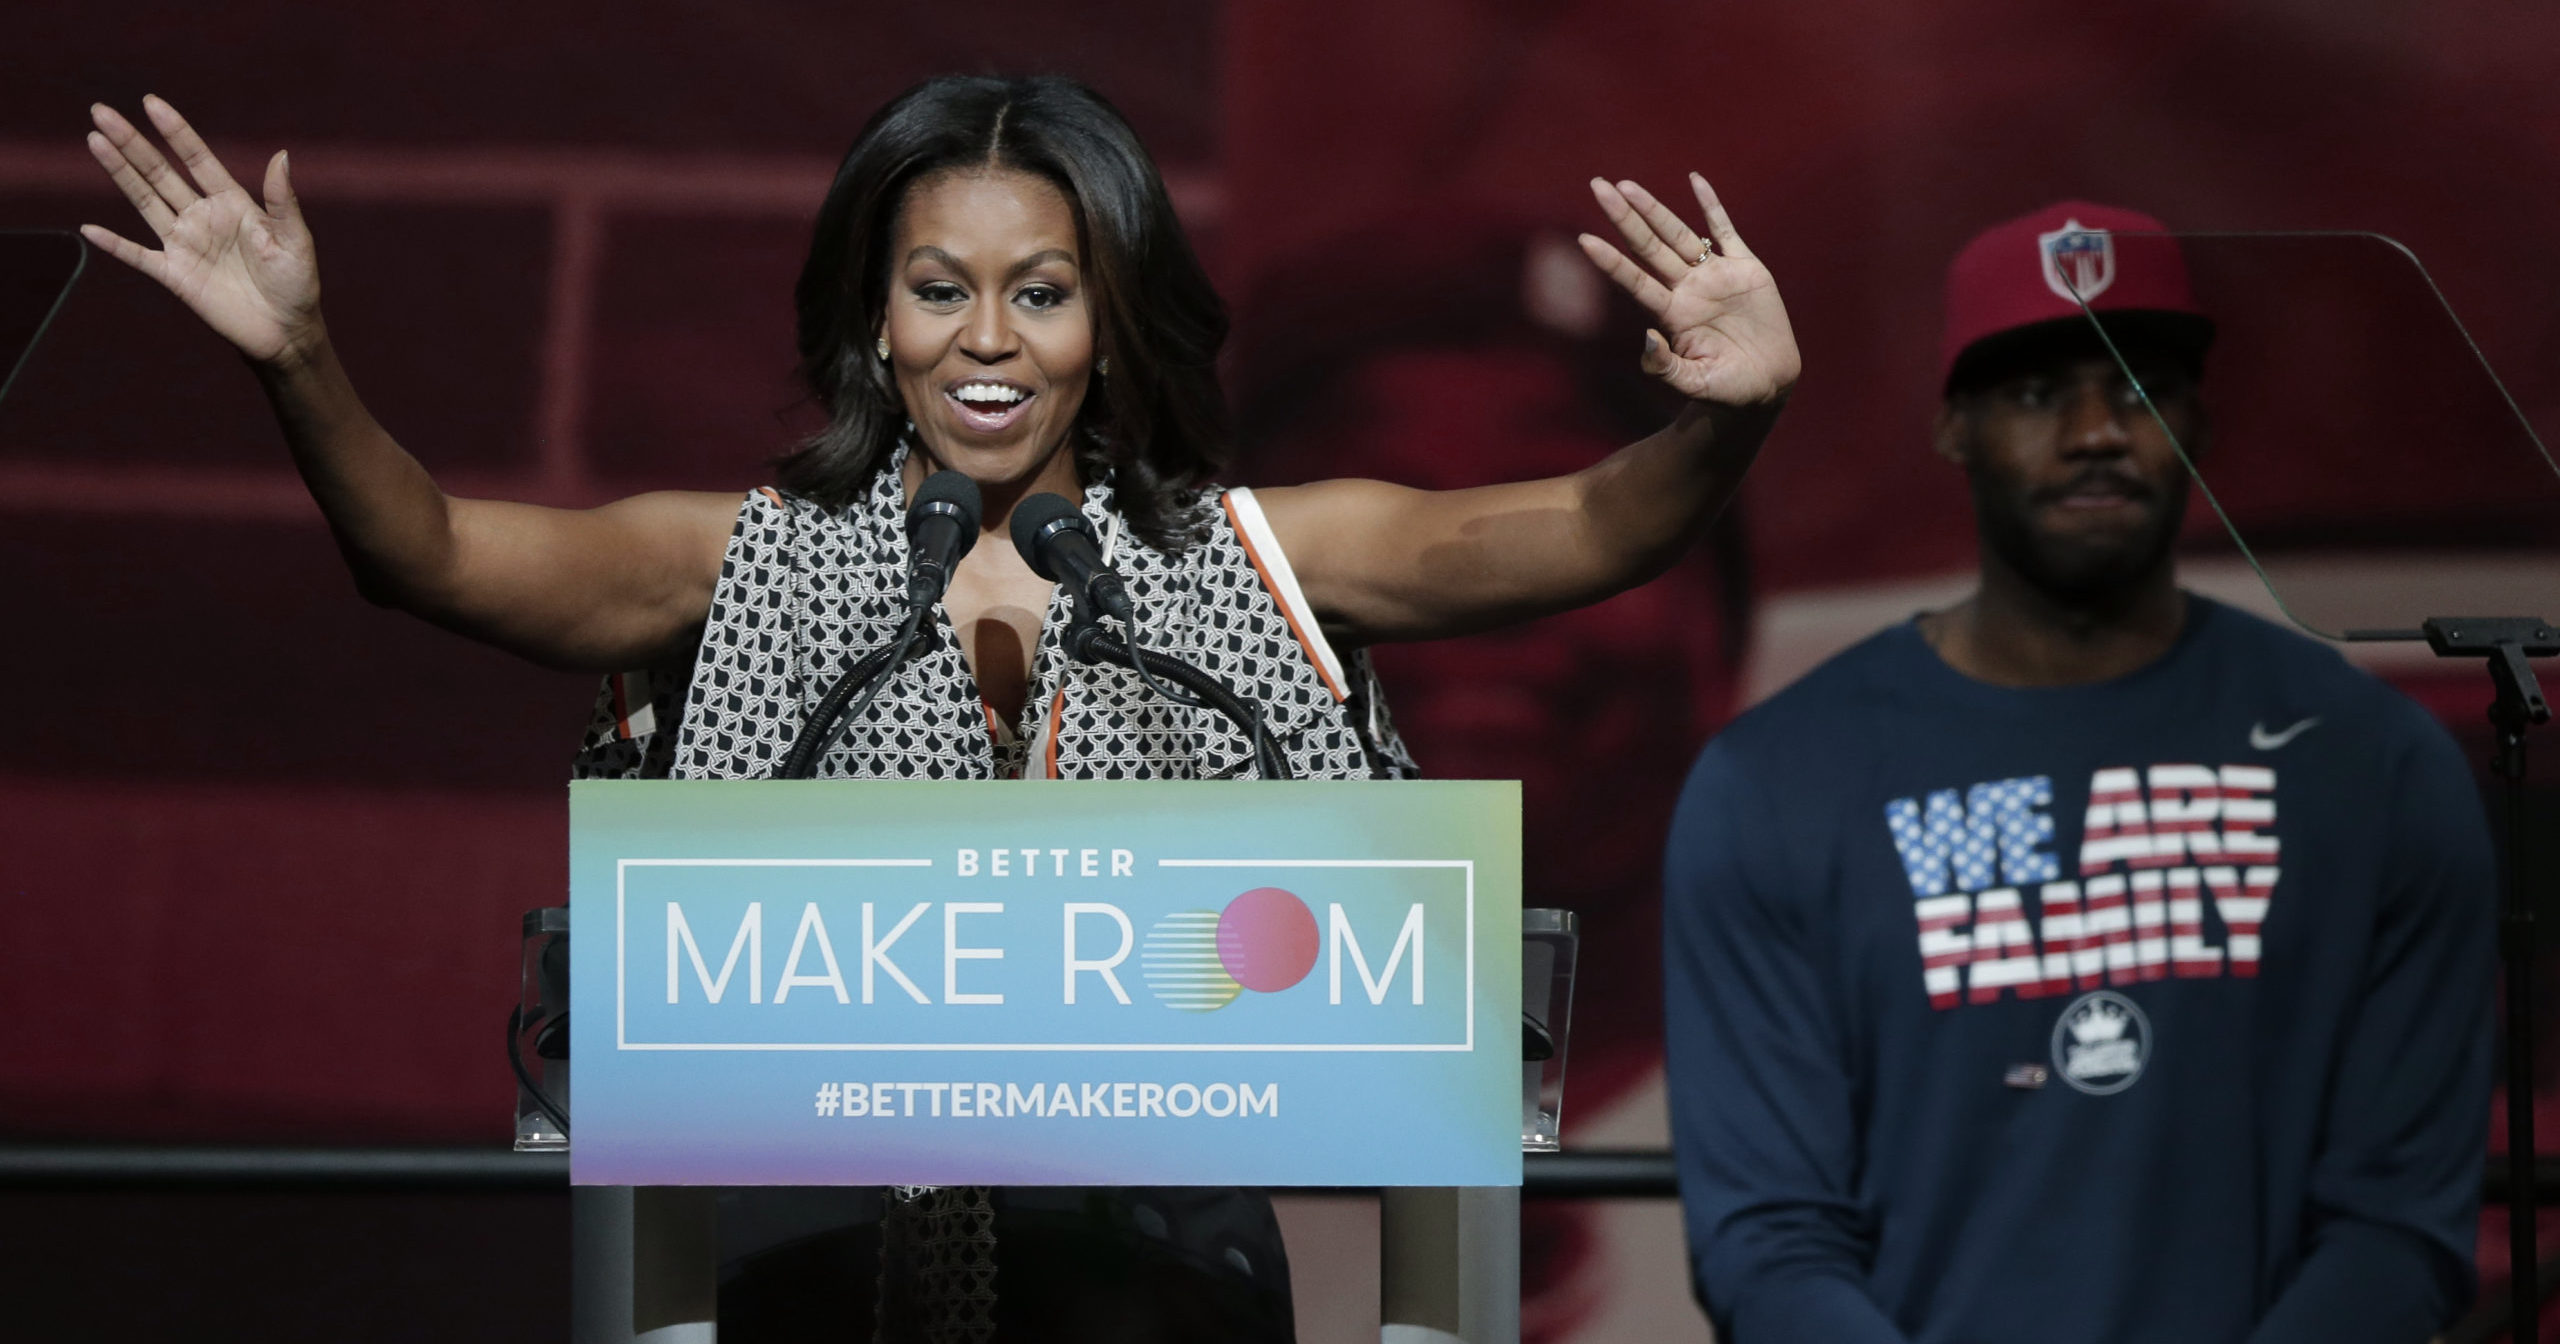 Then-first lady Michelle Obama speaks while NBA star LeBron James listens at the University of Akron in Ohio on Oct. 21, 2015.